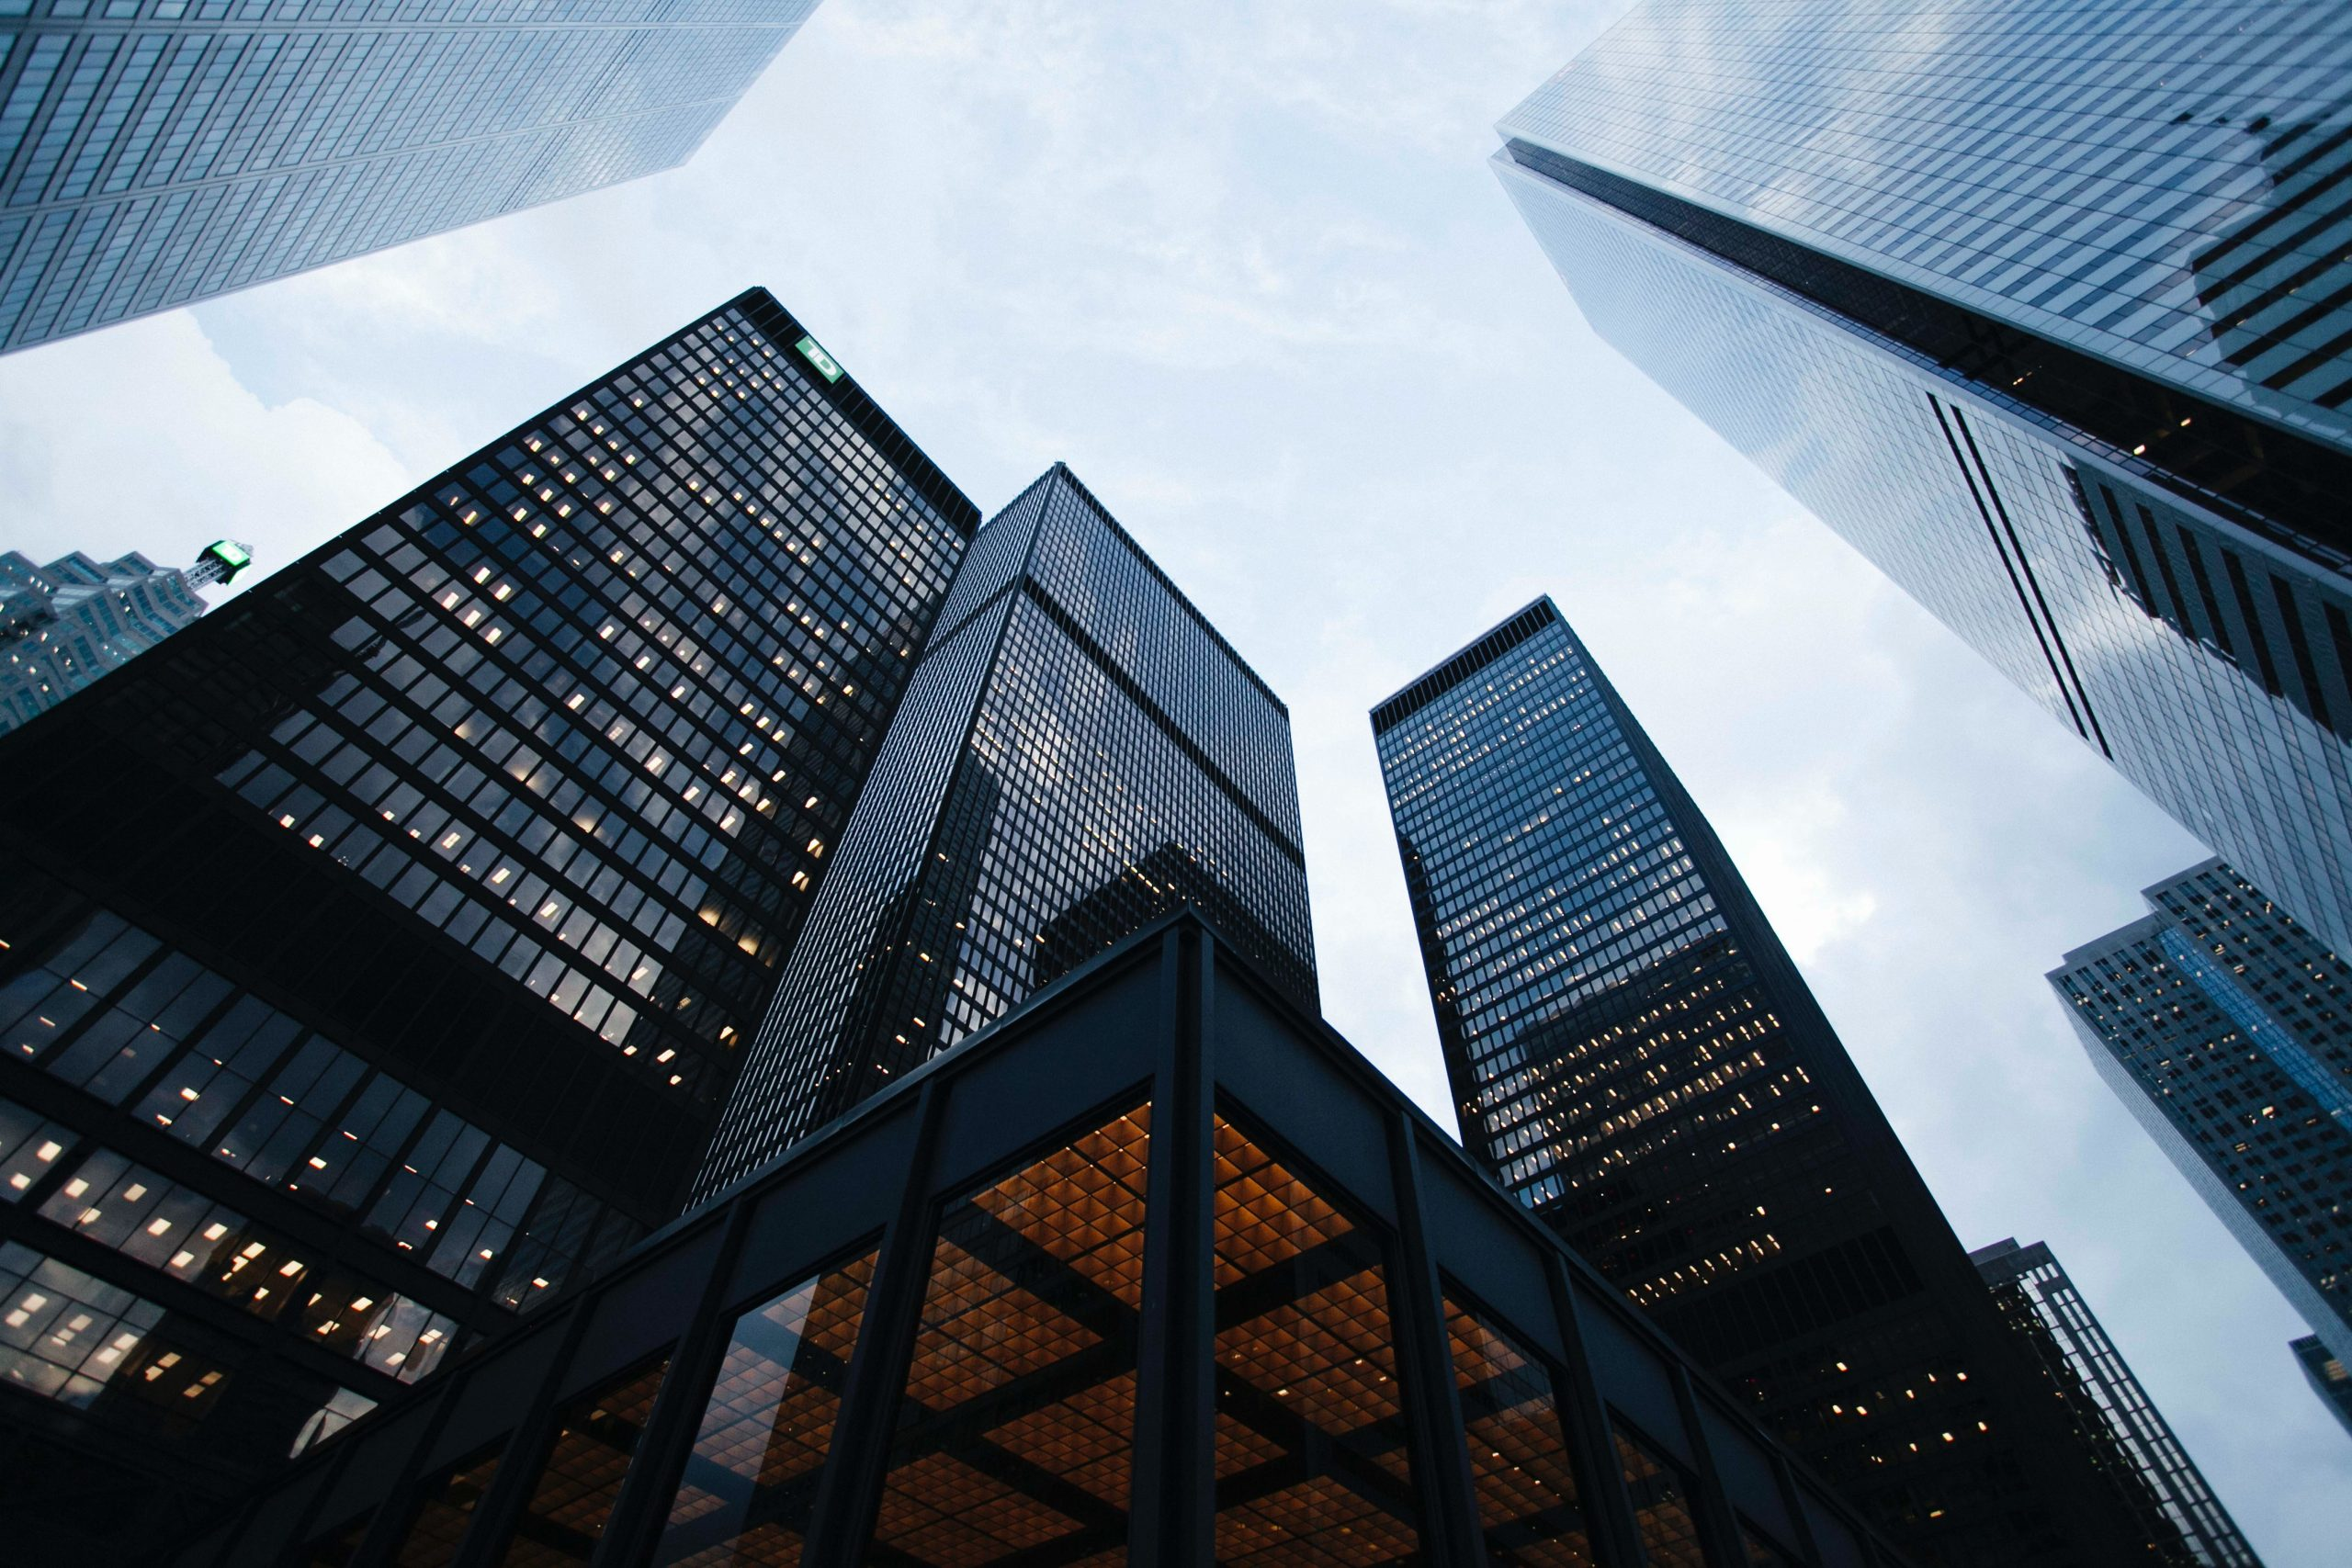 Tall Business Buildings